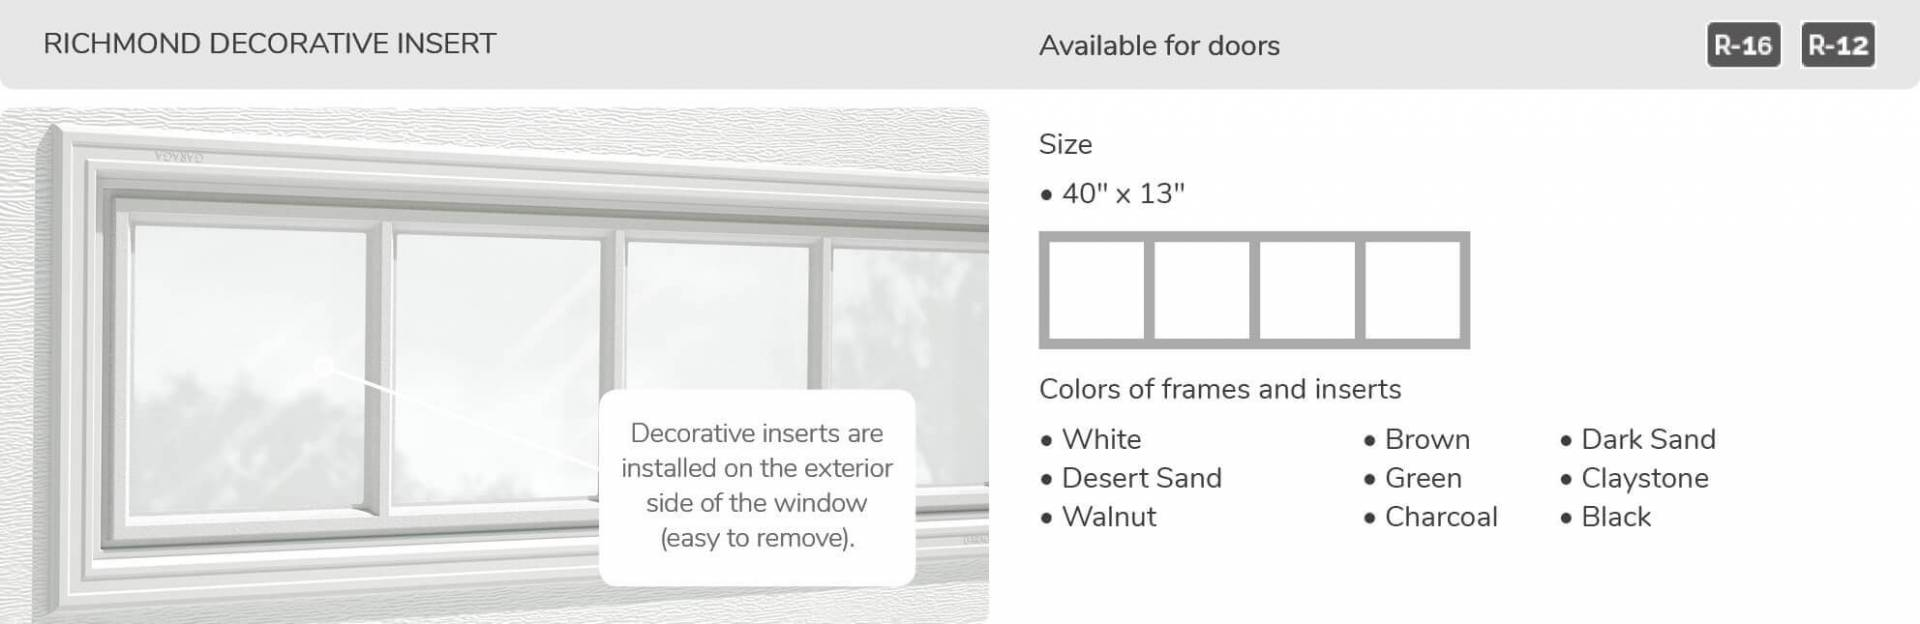 Richmond Decorative Insert, 40' x 13', available for doors R-16 and R-12